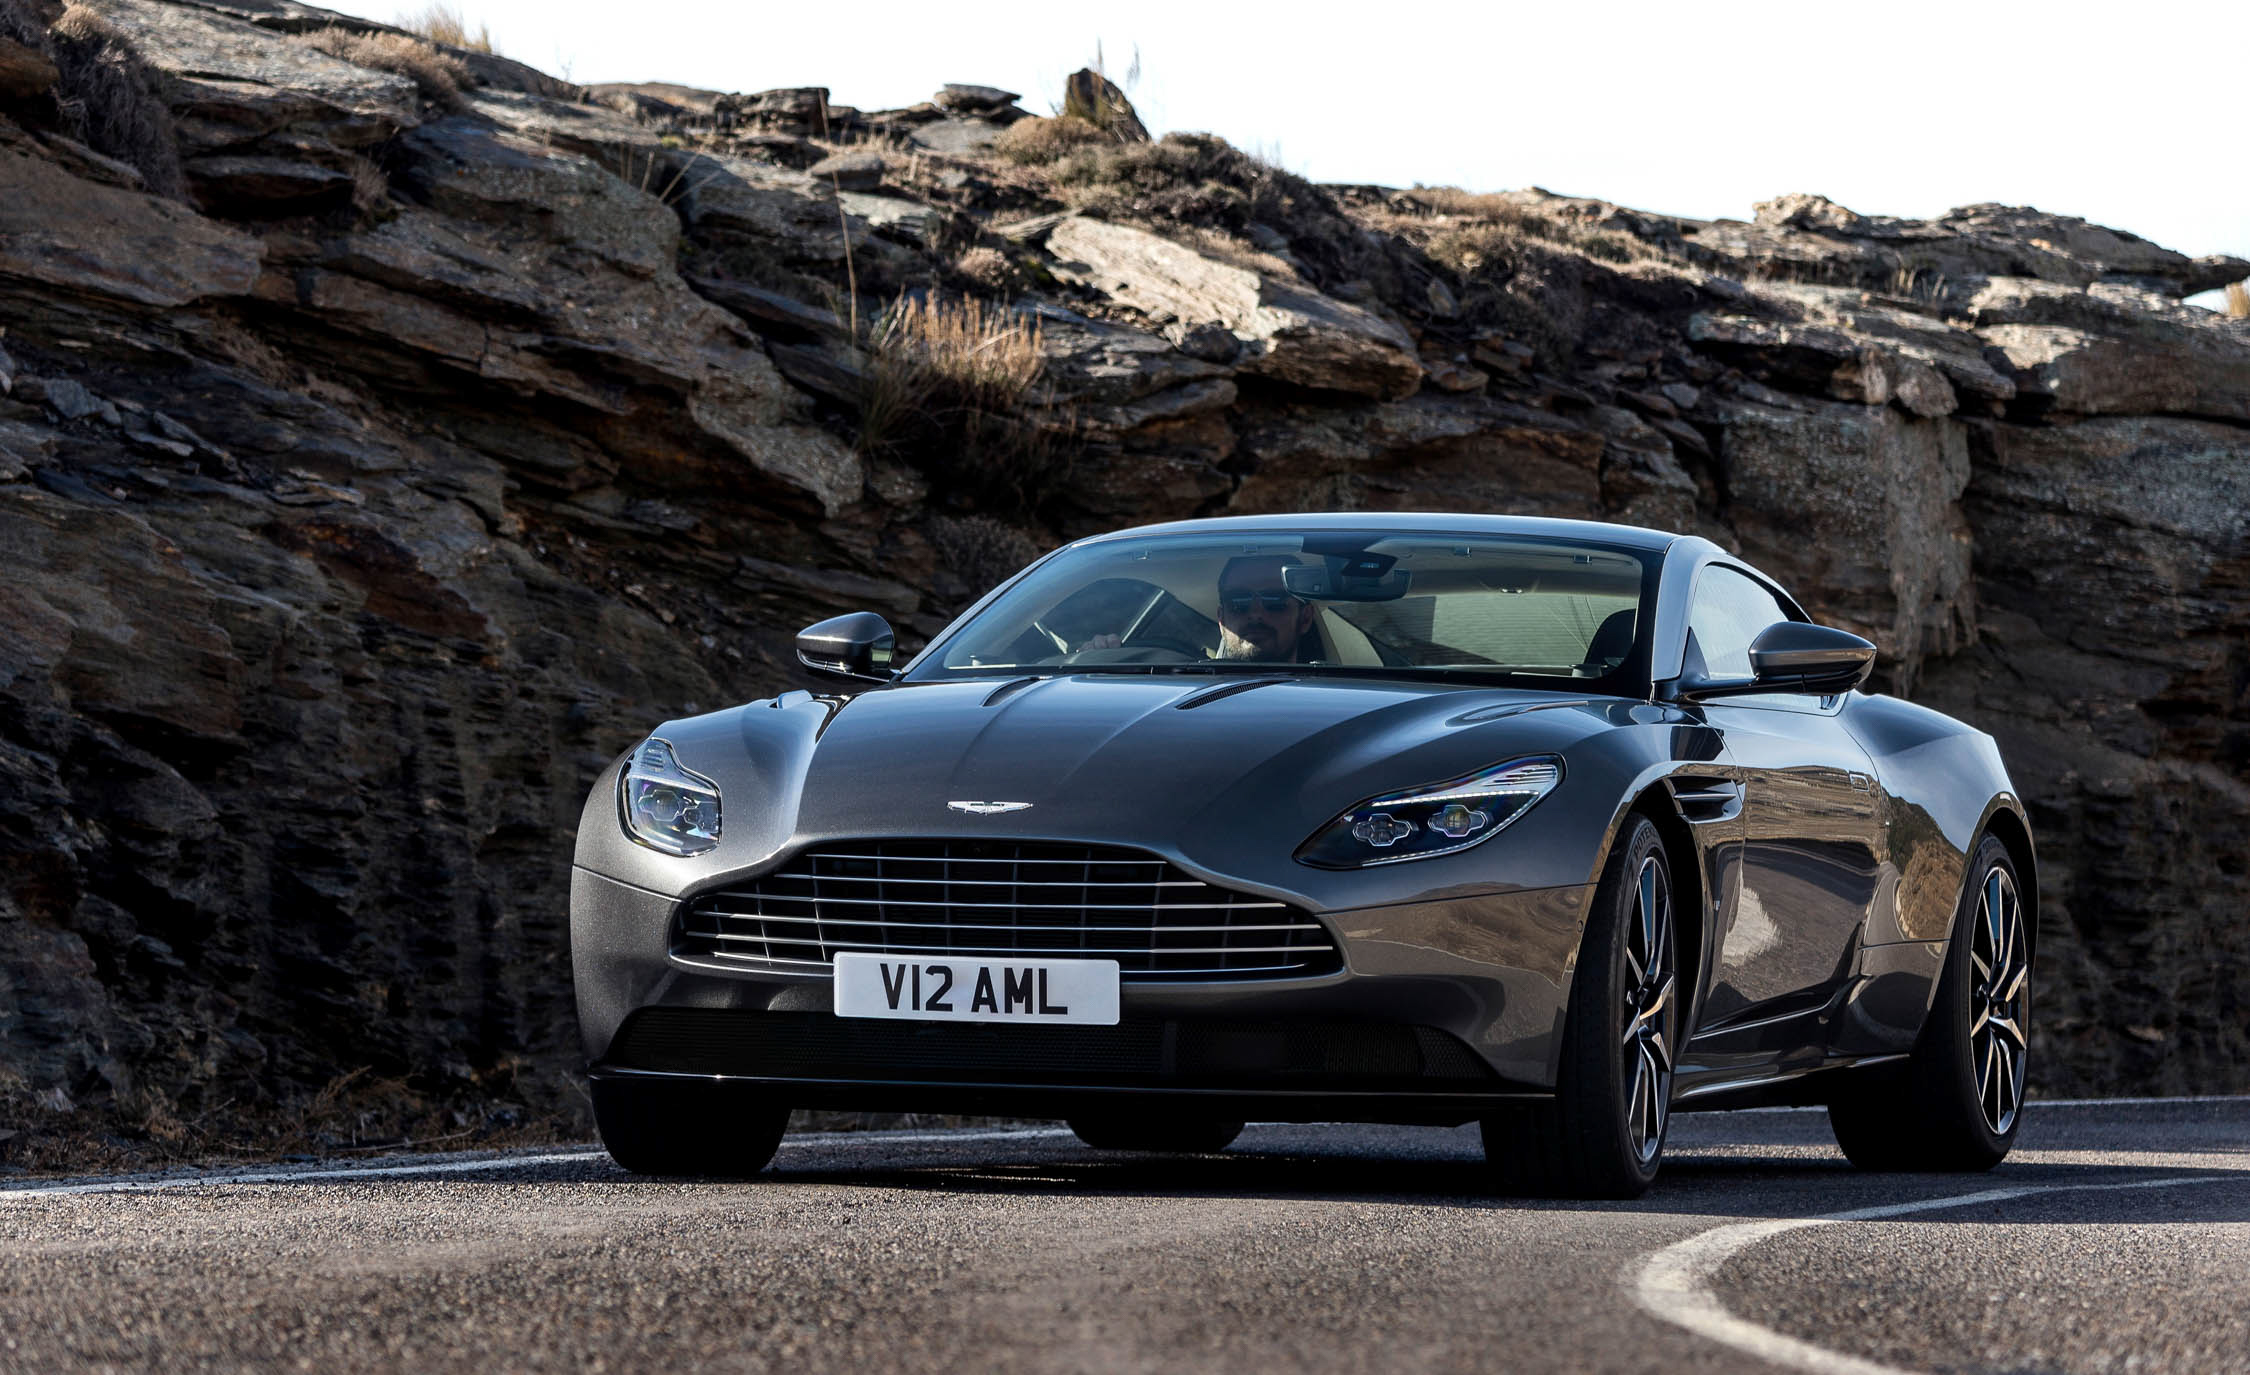 2017 Aston Martin Db11 Exterior Front (Photo 3 of 22)